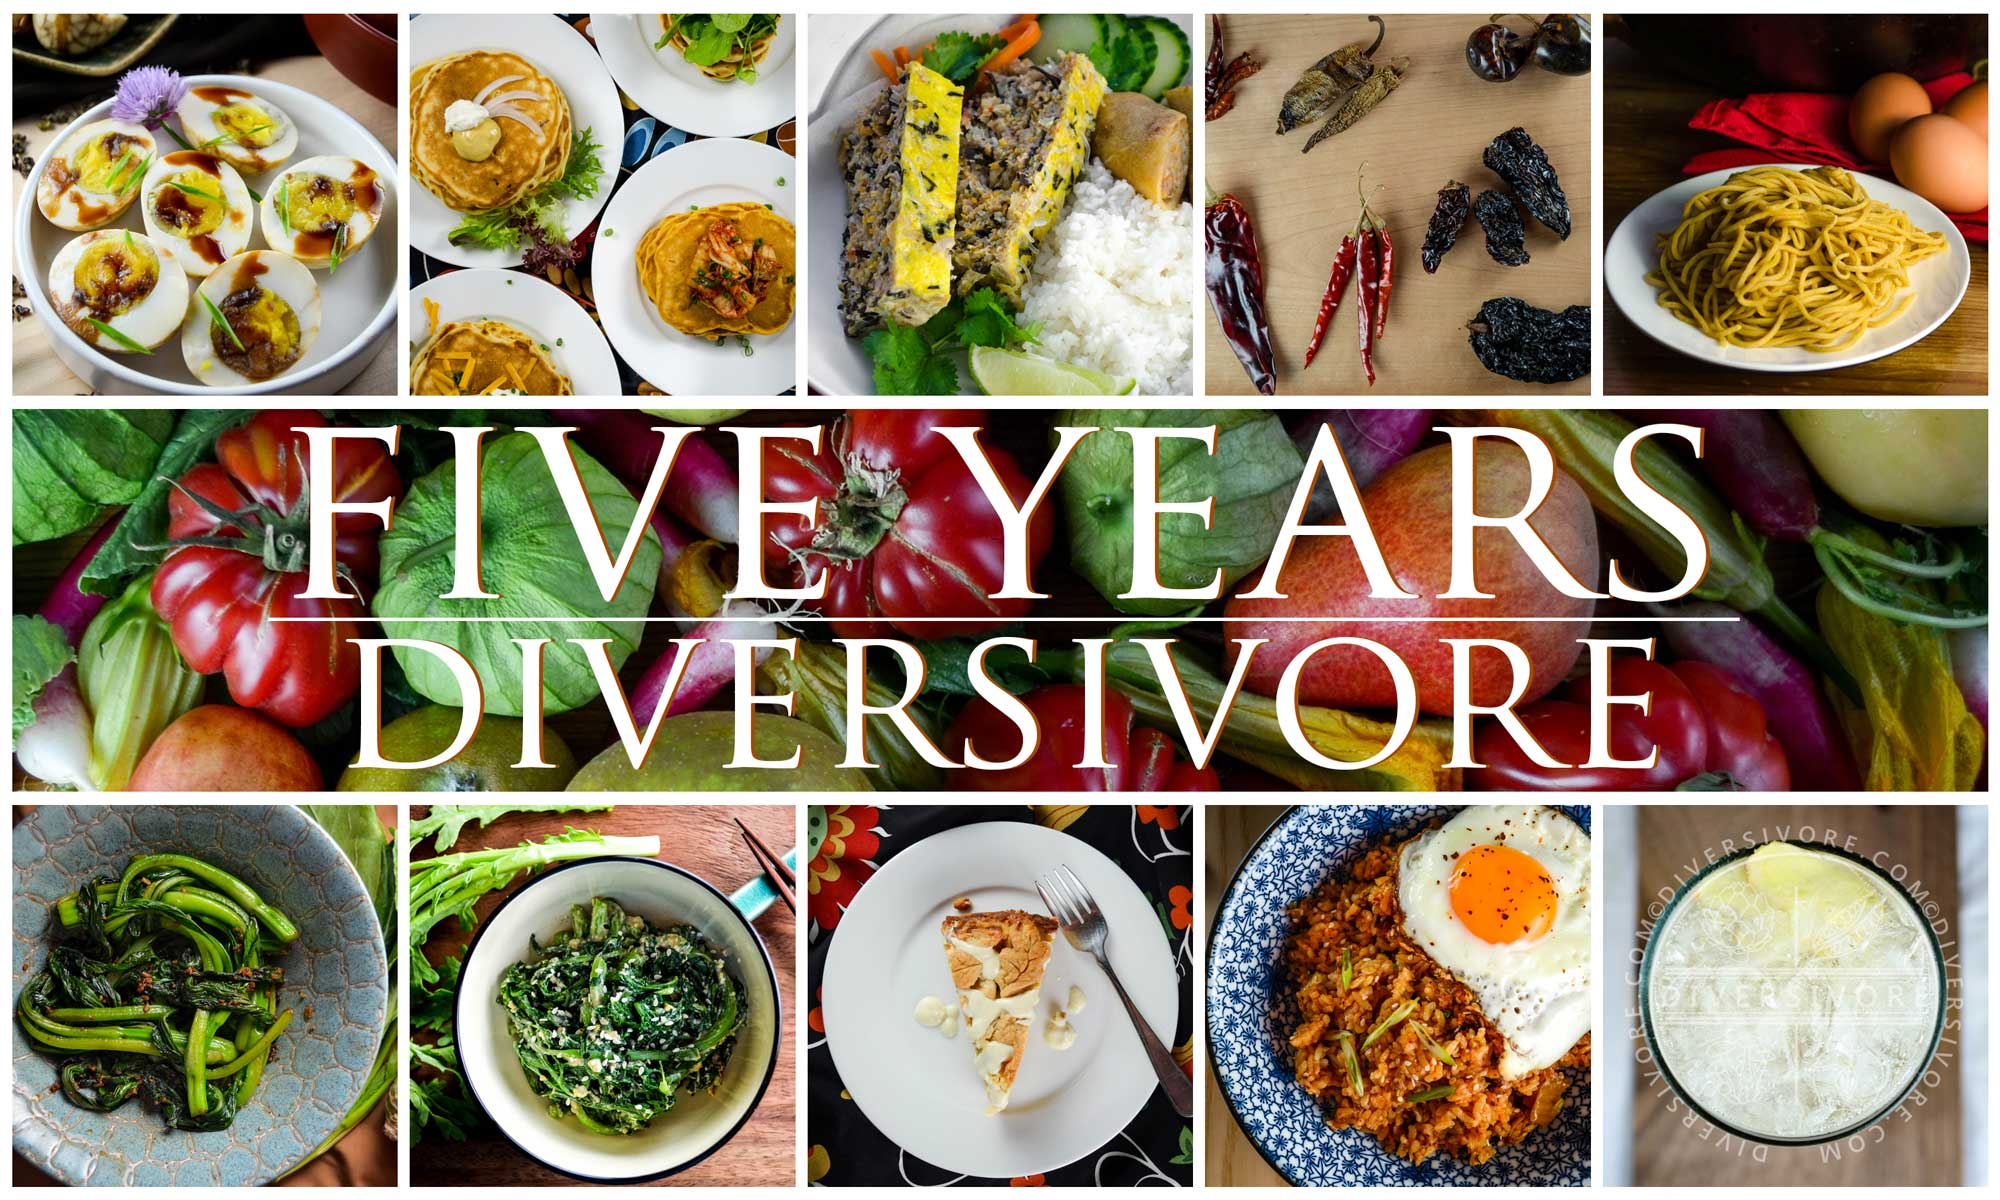 Diversivore at Five - a composite image showing the 10 biggest posts from the site over the last five years